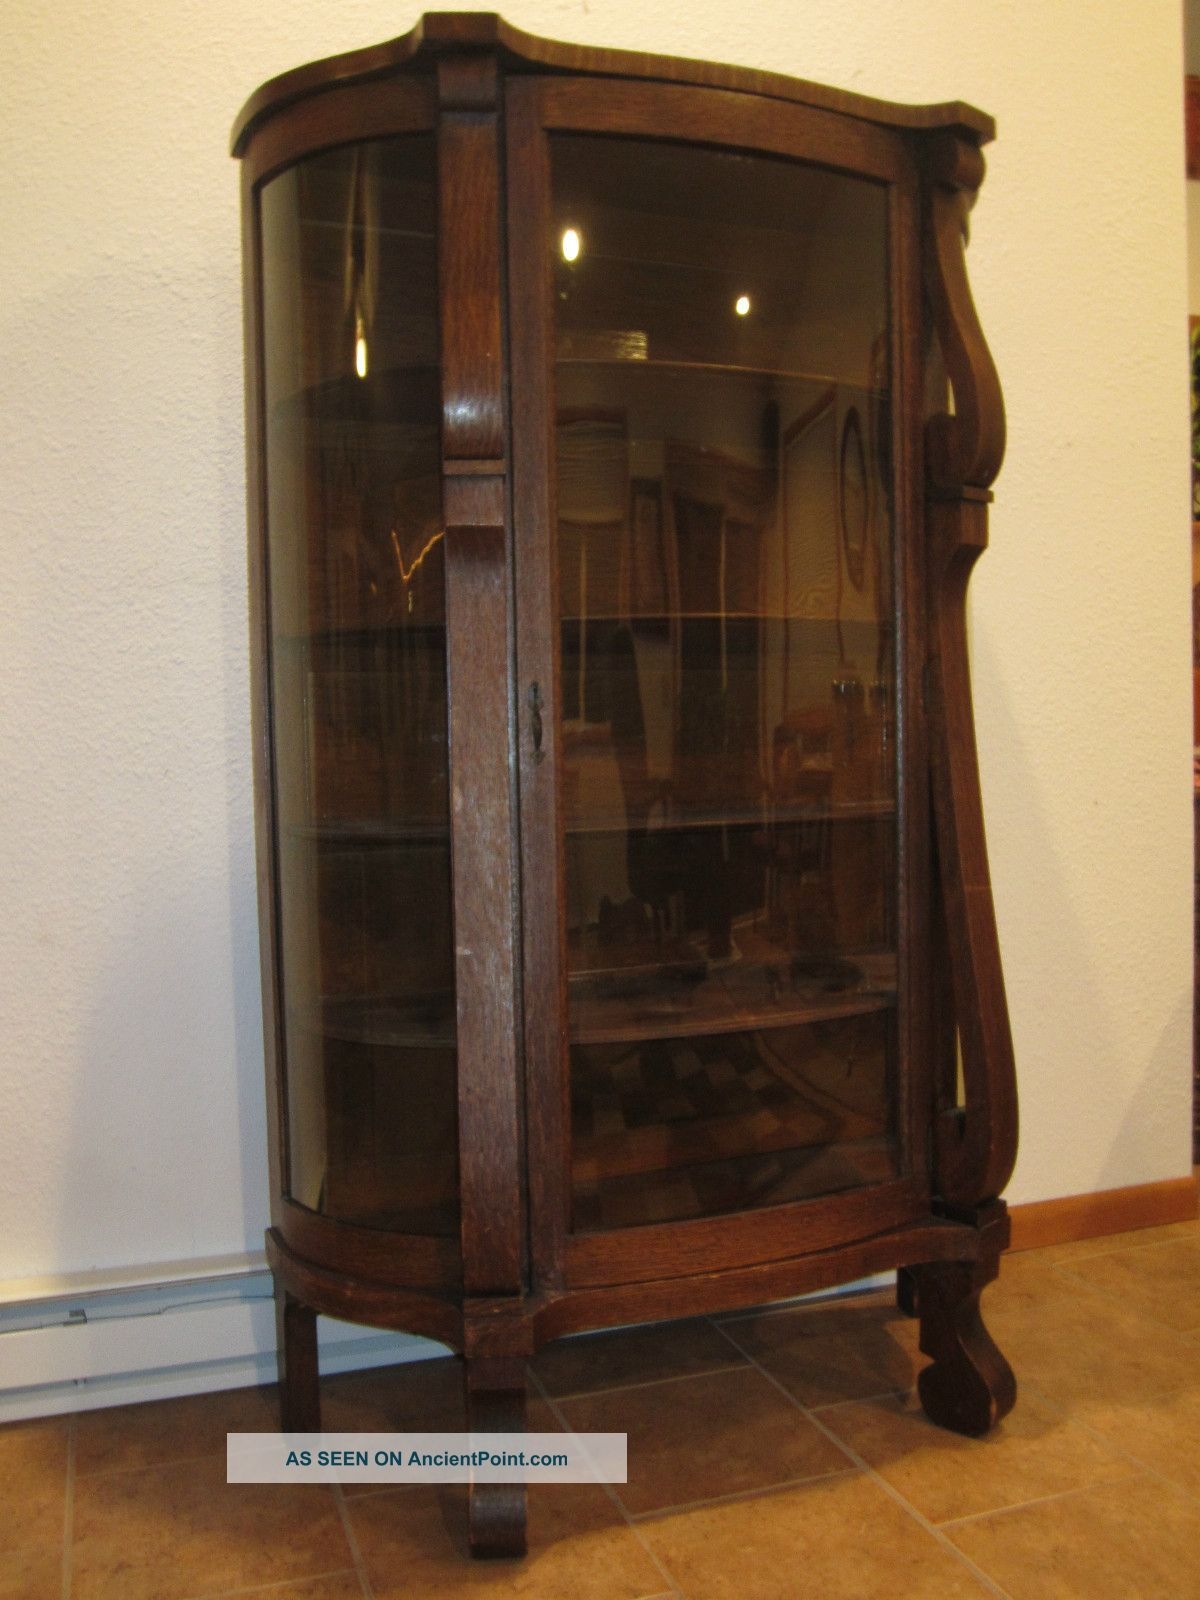 Antique Bowfront Oak China Curio Cabinet Glassware - Ebert Furniture Co. Antique Bowfront Oak China Curio Cabinet